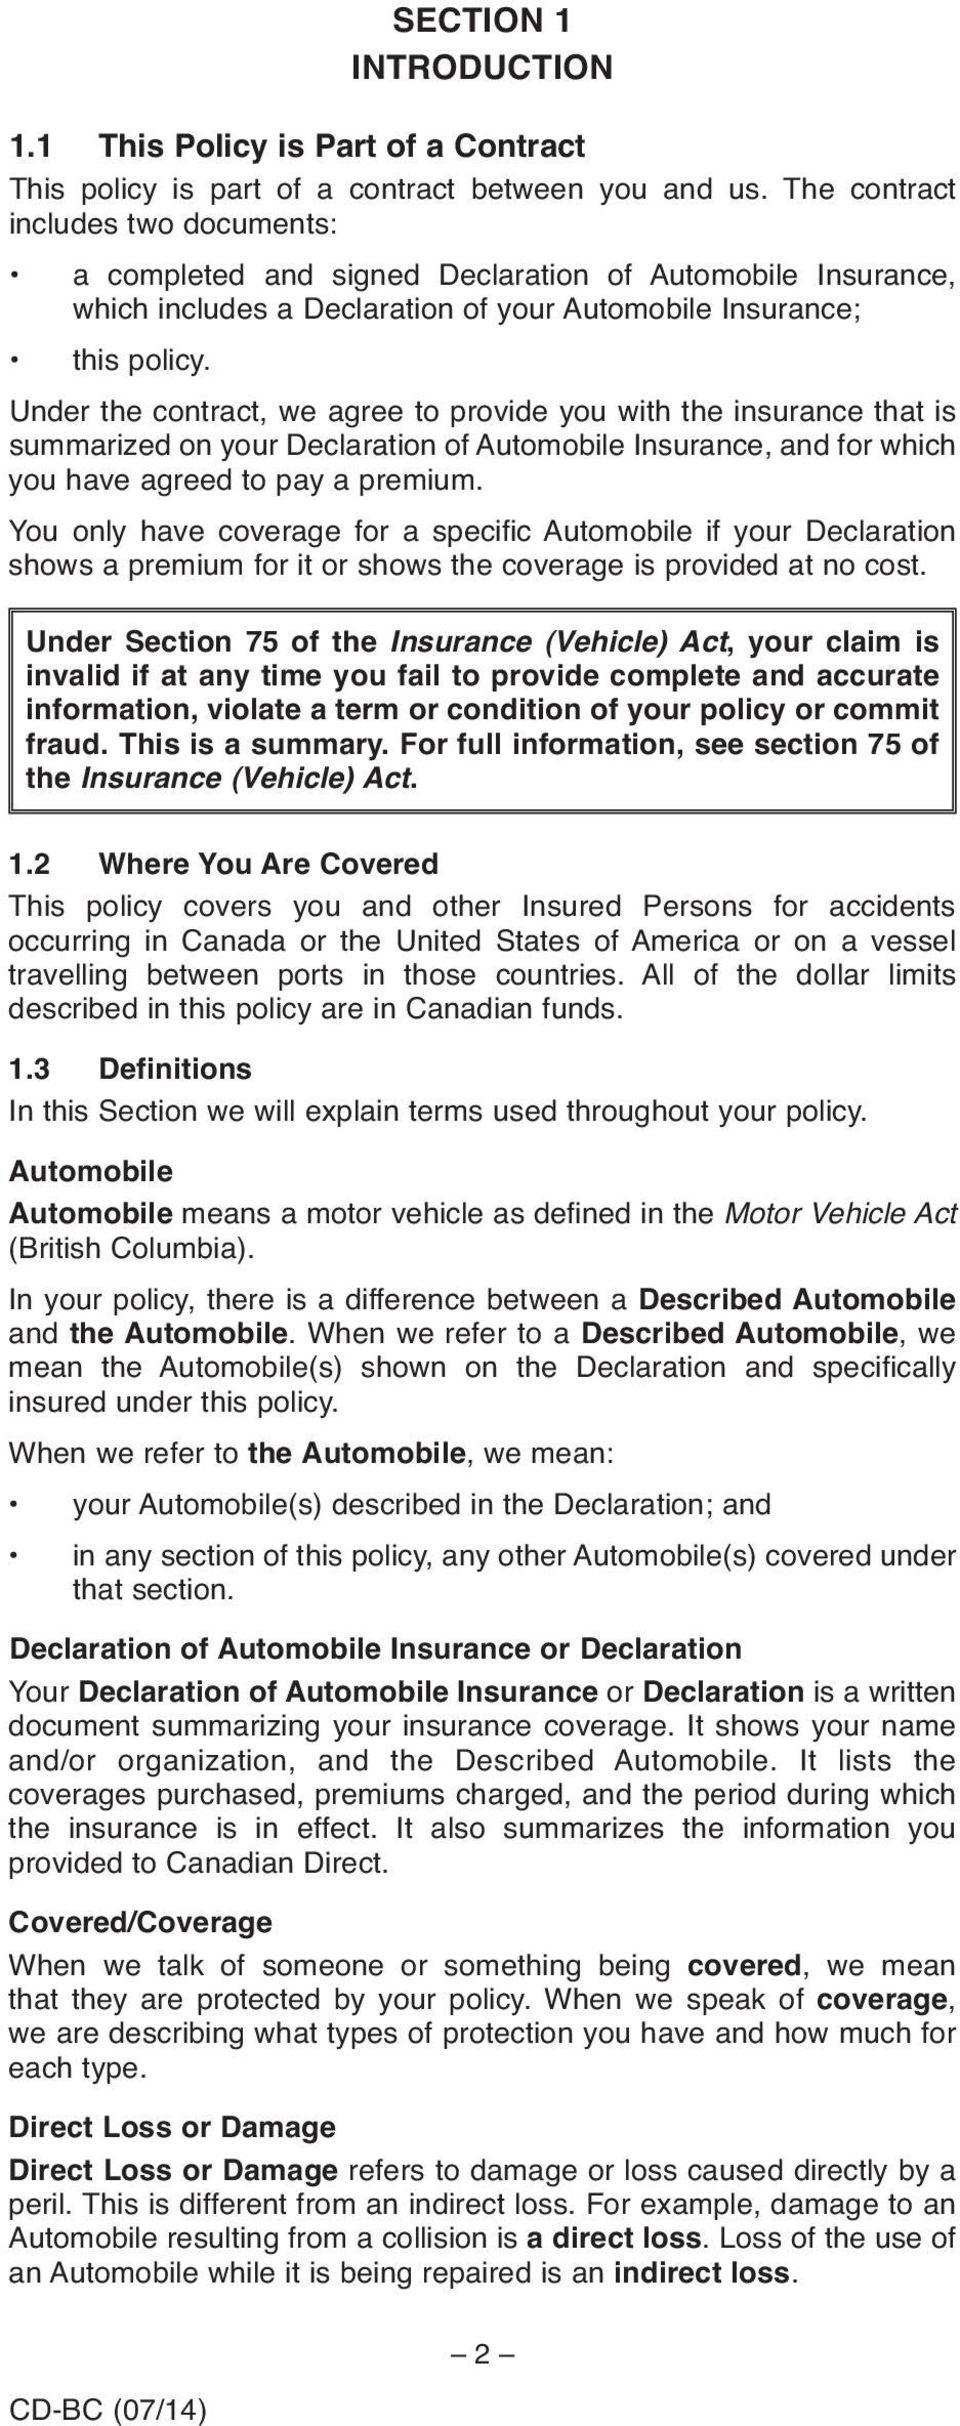 Car Insurance Declaration Page Example - Cars Models